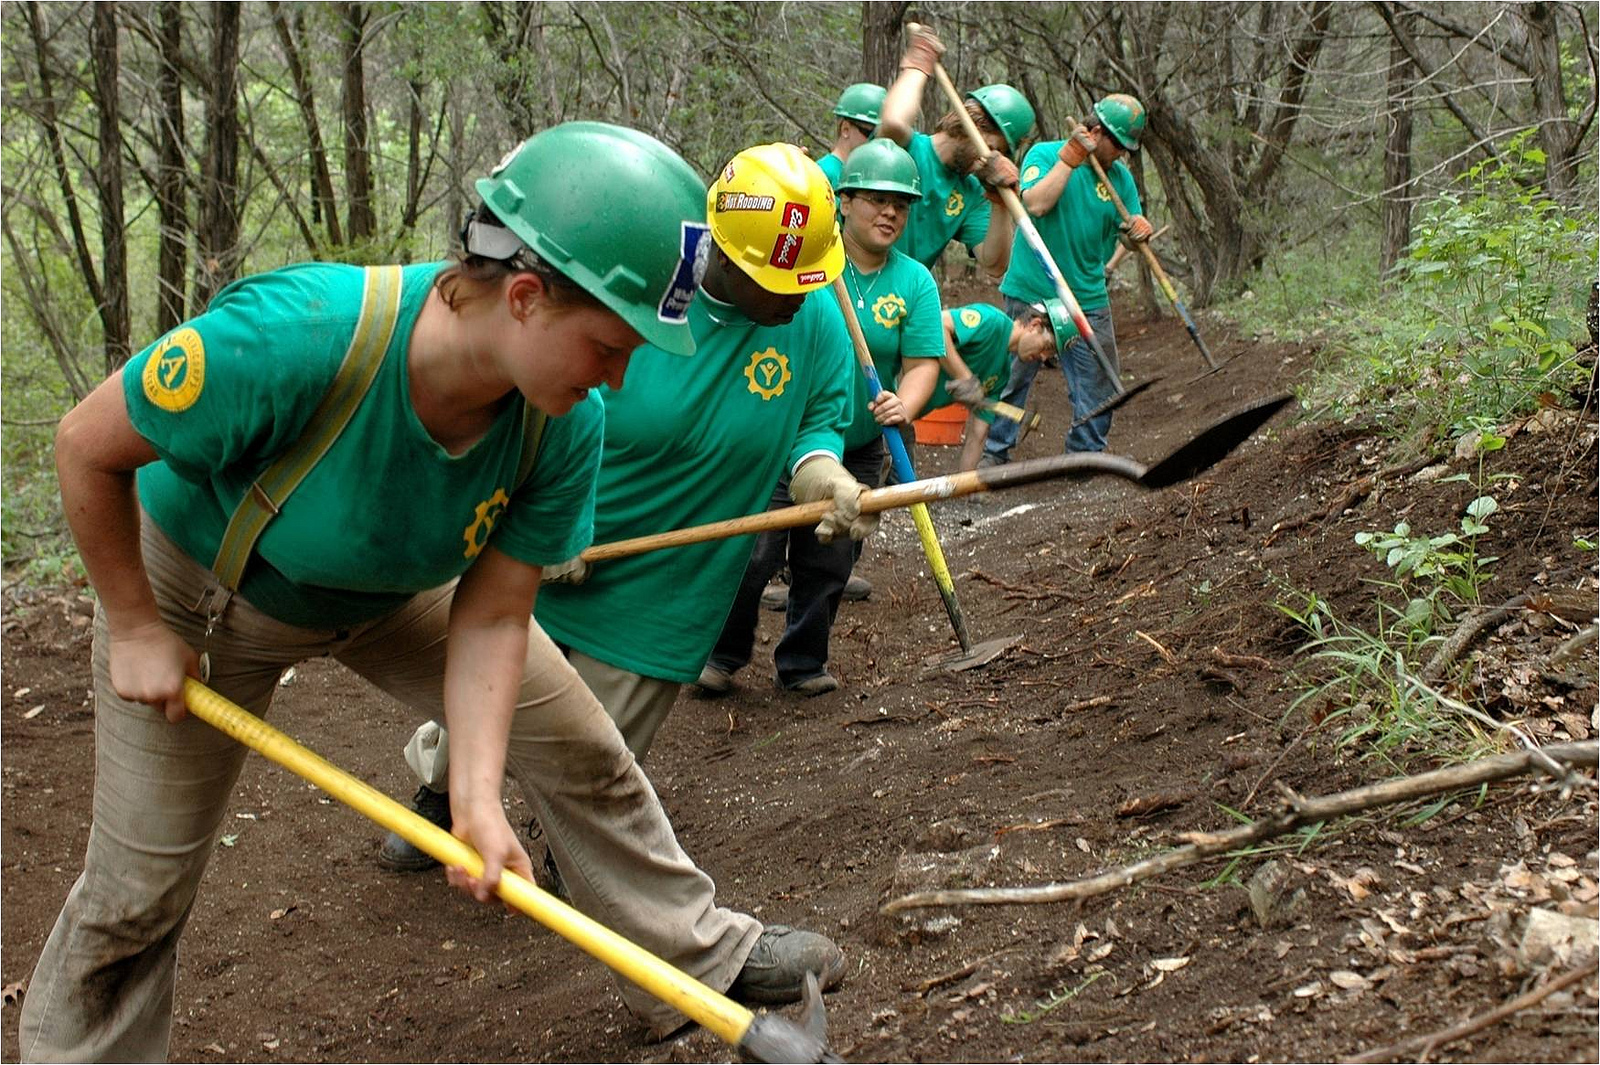 Notice the Americorps patch on the sleeves? This is an Americorps group from 2013, building trails in Texas. ( Licensed under CC 2.0 ;  source )